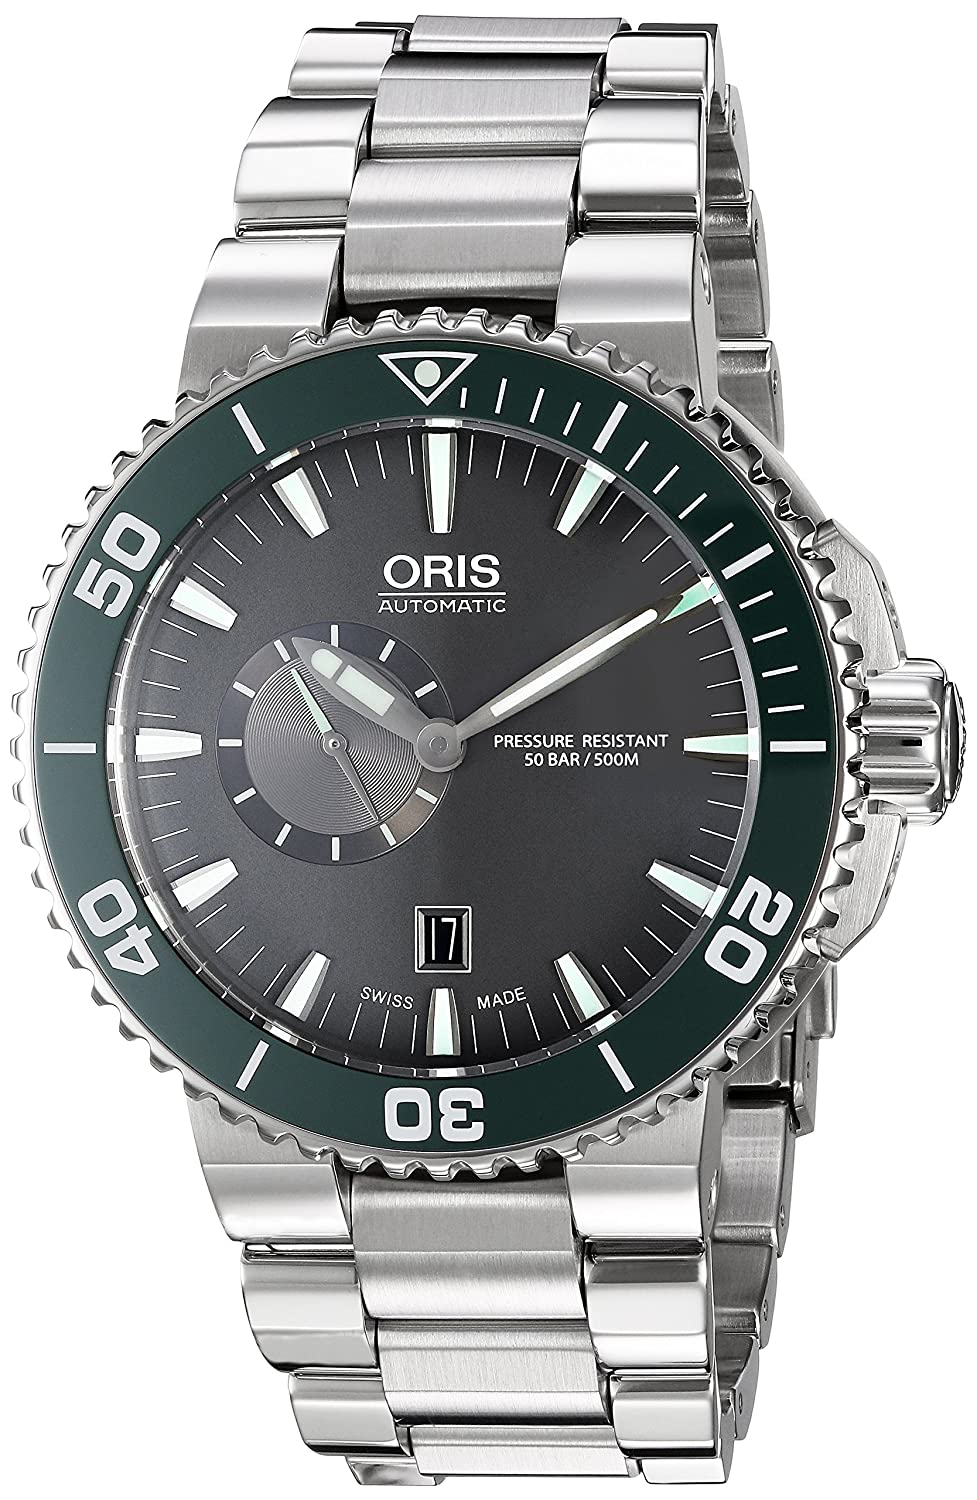 Oris Men s Aquis Swiss Automatic Stainless Steel Dress Watch, Color Silver-Toned Model 74376734137MB